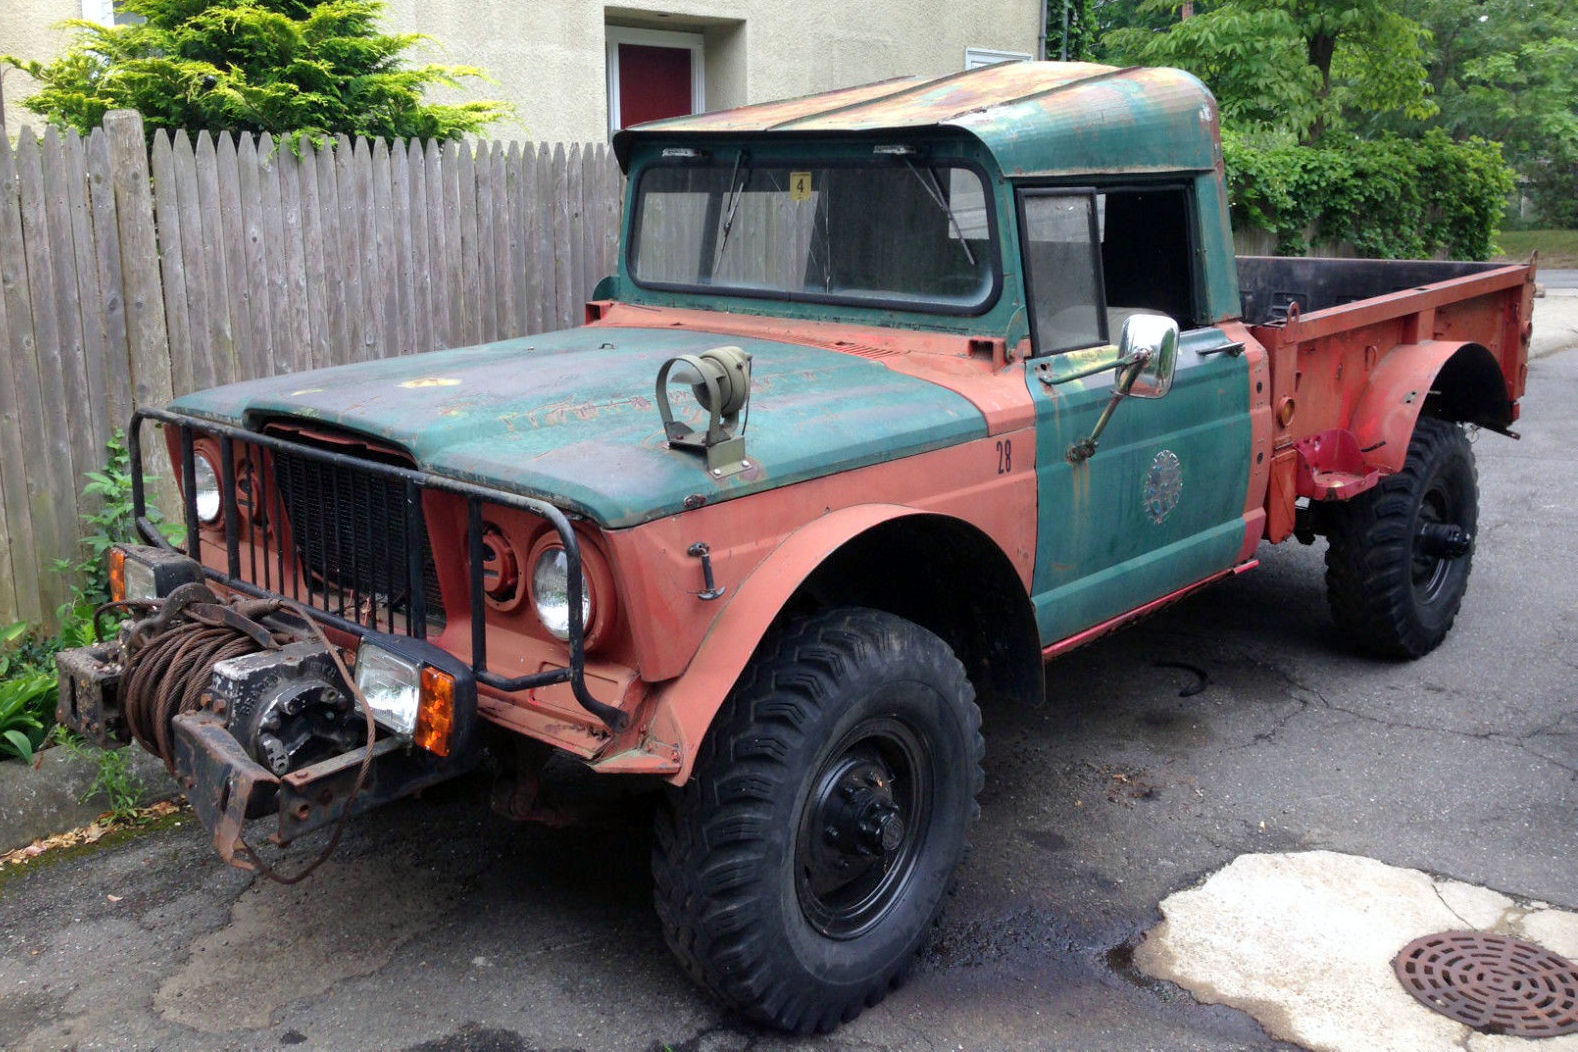 car trucks for sale in craigslist with Military Gladiator 1968 Kaiser Jeep M715 on 1968 Cadillac Deville For Sale In Westford Massachusetts 01886 together with Al Ritters Wicked Cool 1952 Chevy 3100 besides 1953 56 Ford Truck Short Bed also 43035 1985 Ford Thunderbird Elan 50 V8 Garage Kept 71k Miles further Spring Special 1965 Ford Econoline Pickup.